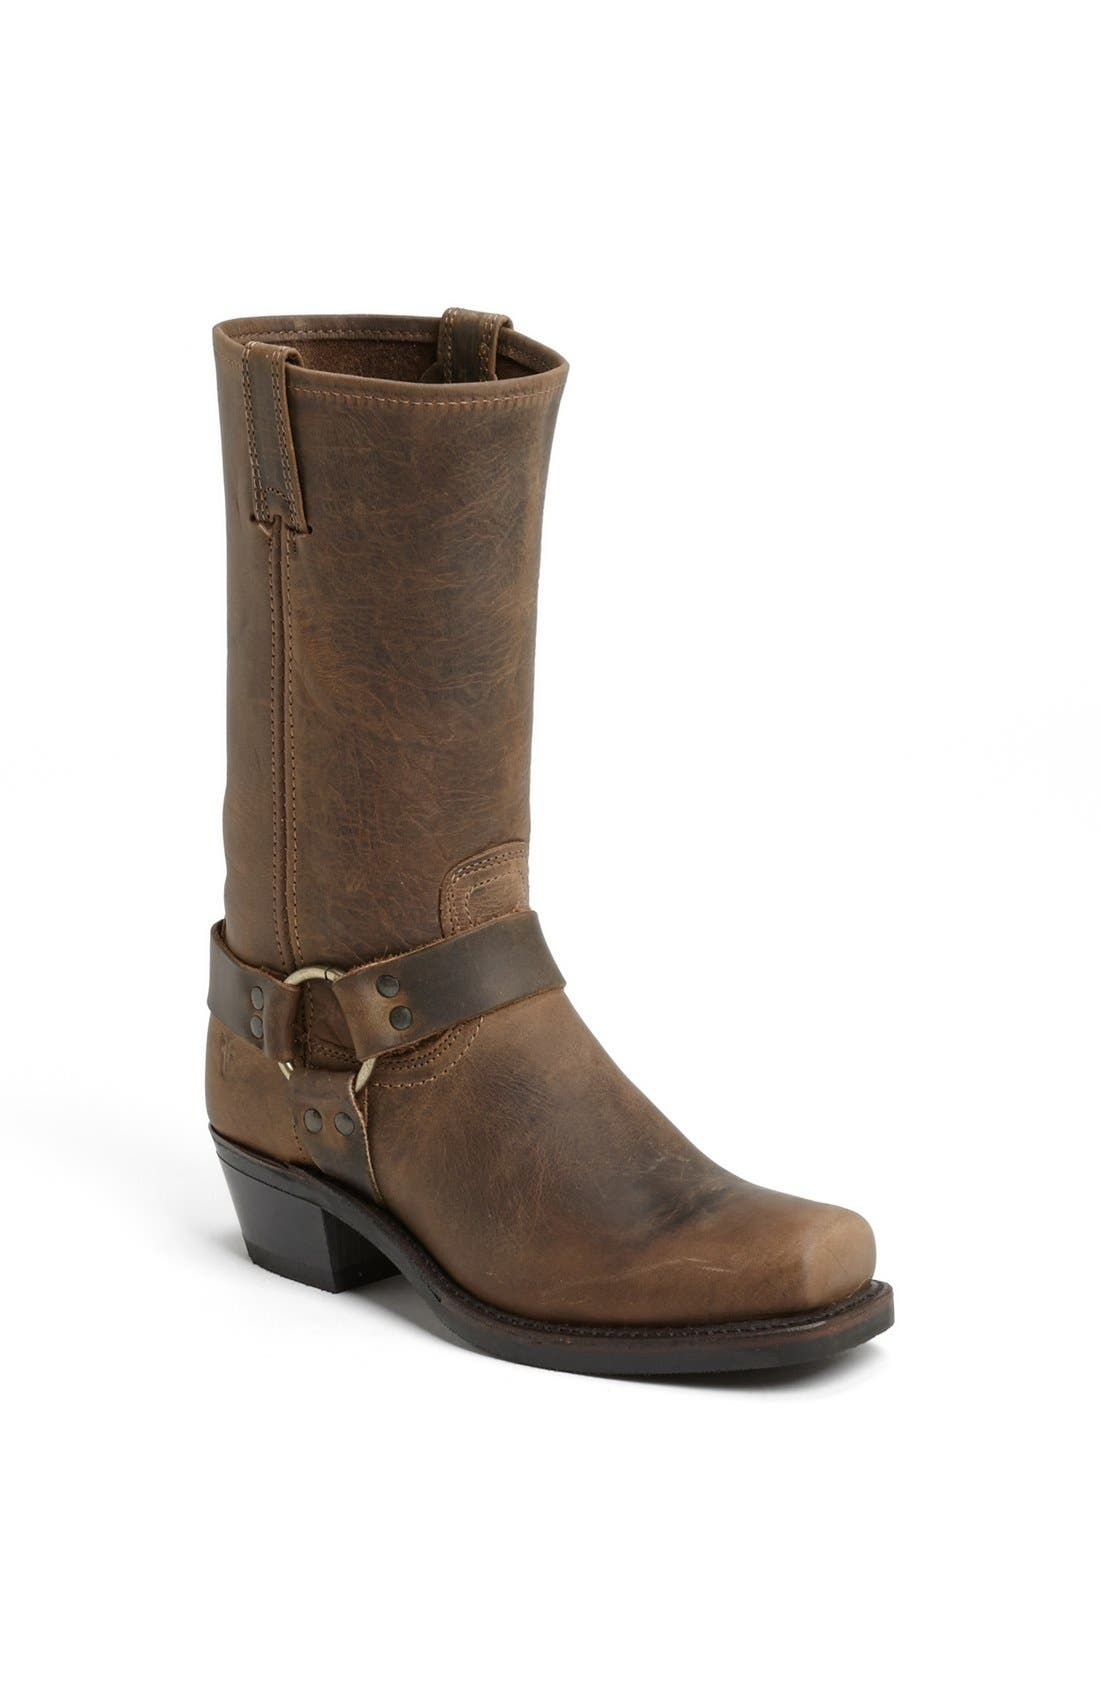 Alternate Image 1 Selected - Frye 'Harness 12R' Leather Boot (Women)